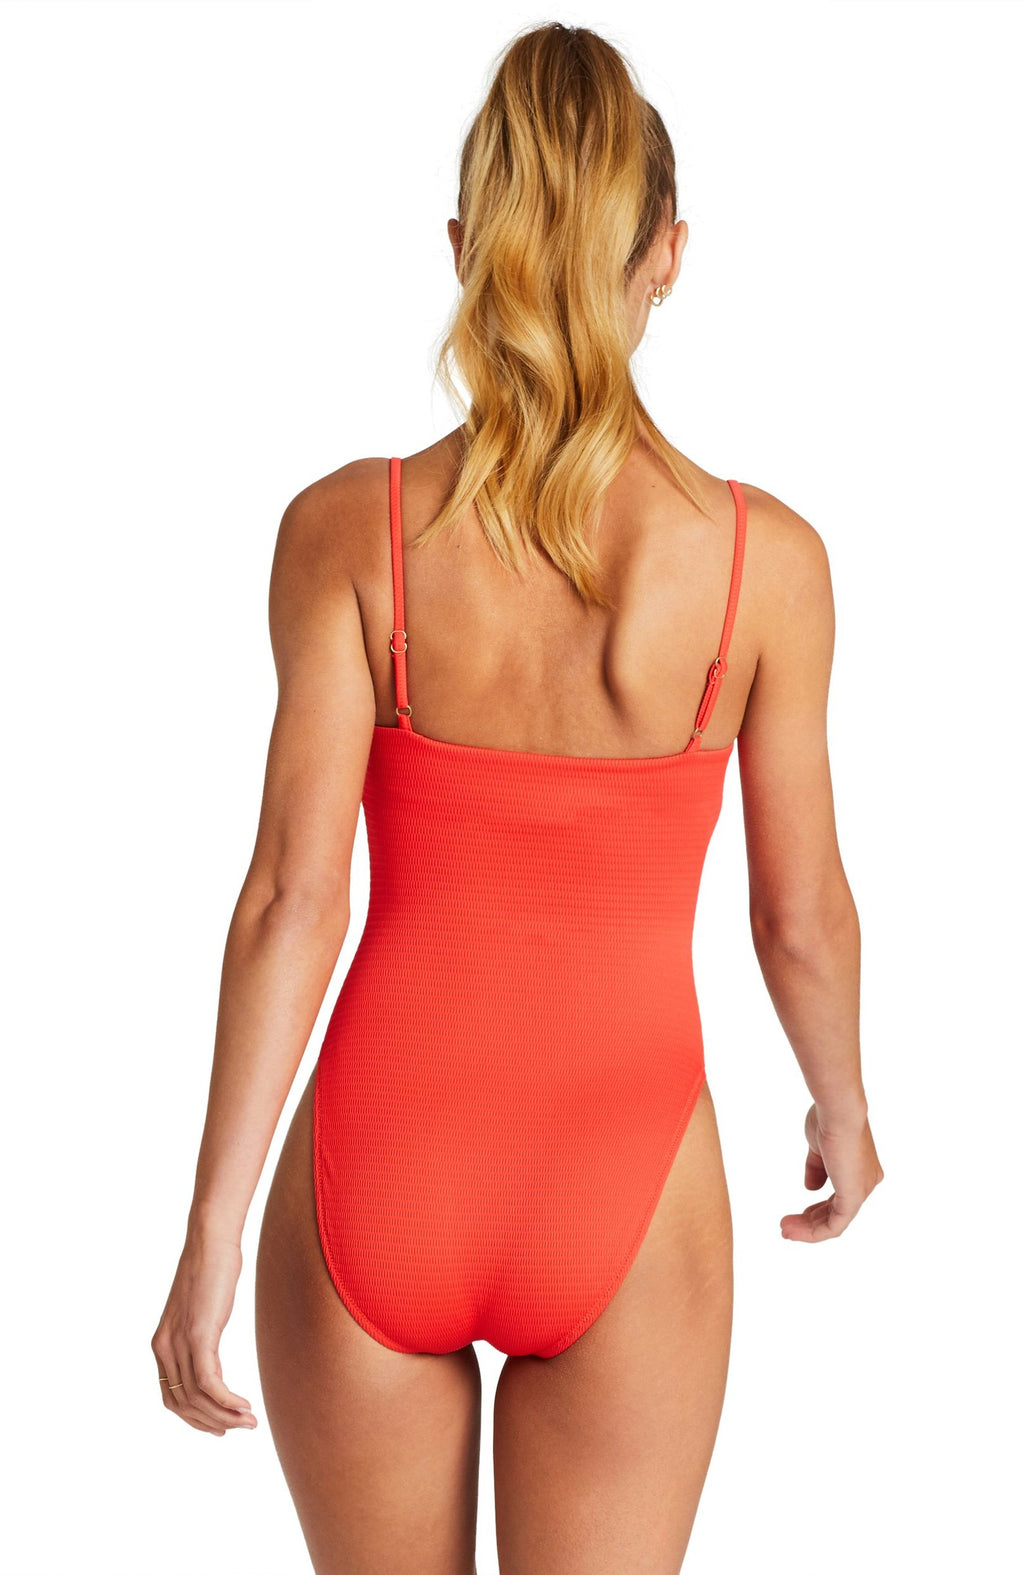 Vitamin A Jenna Full Cut One Piece Swimsuit in Red EcoTex